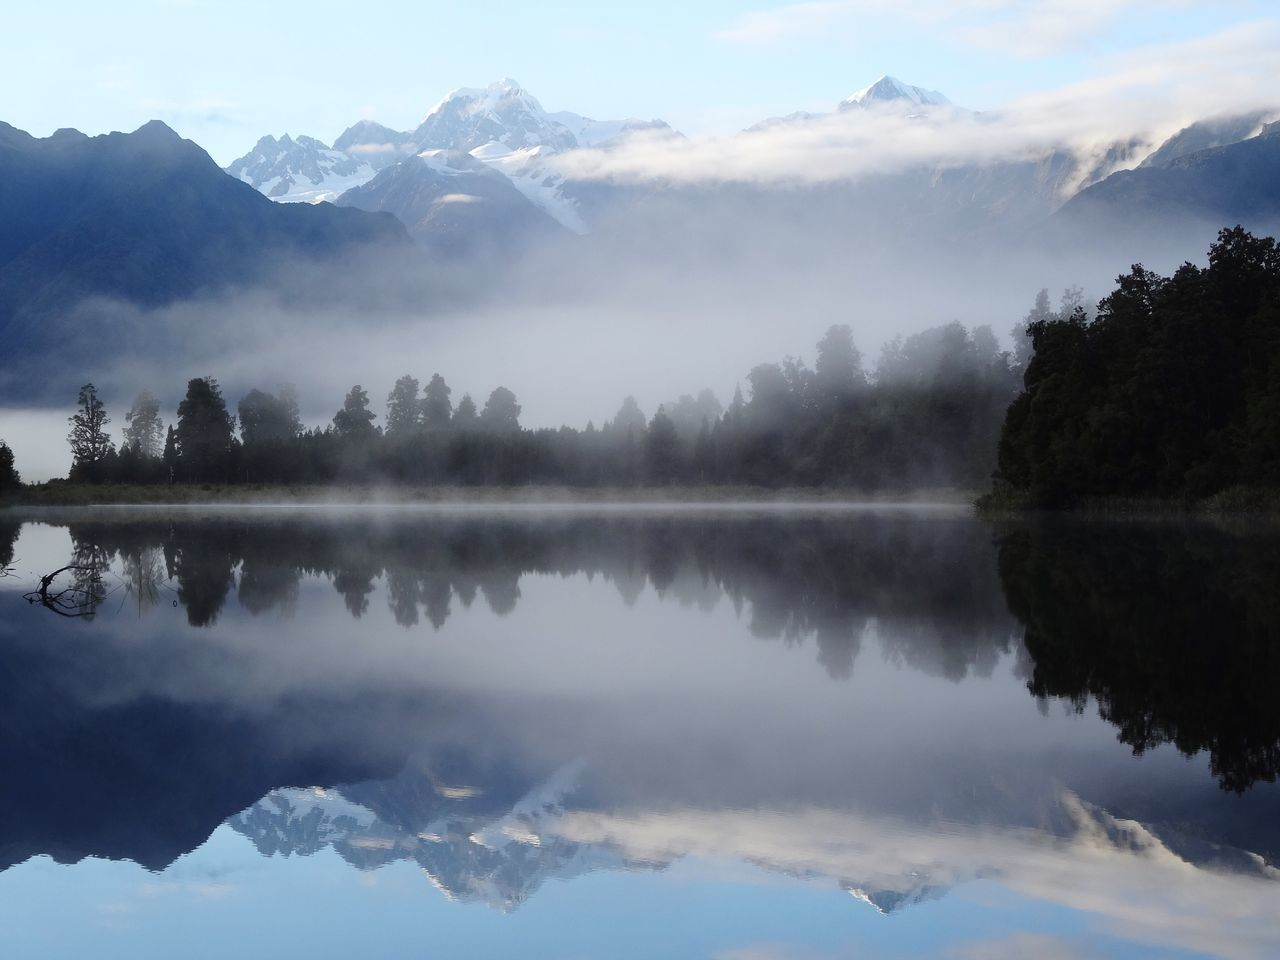 Reflection Mountain Water Nature Lake Tranquility Beauty In Nature Scenics No People Sky Mountain Range Fog Tranquil Scene Outdoors Day Tree Water Reflections Silence Symmetry Morning Light Lake Matheson Mirror Lake New Zealand Calm Foggy